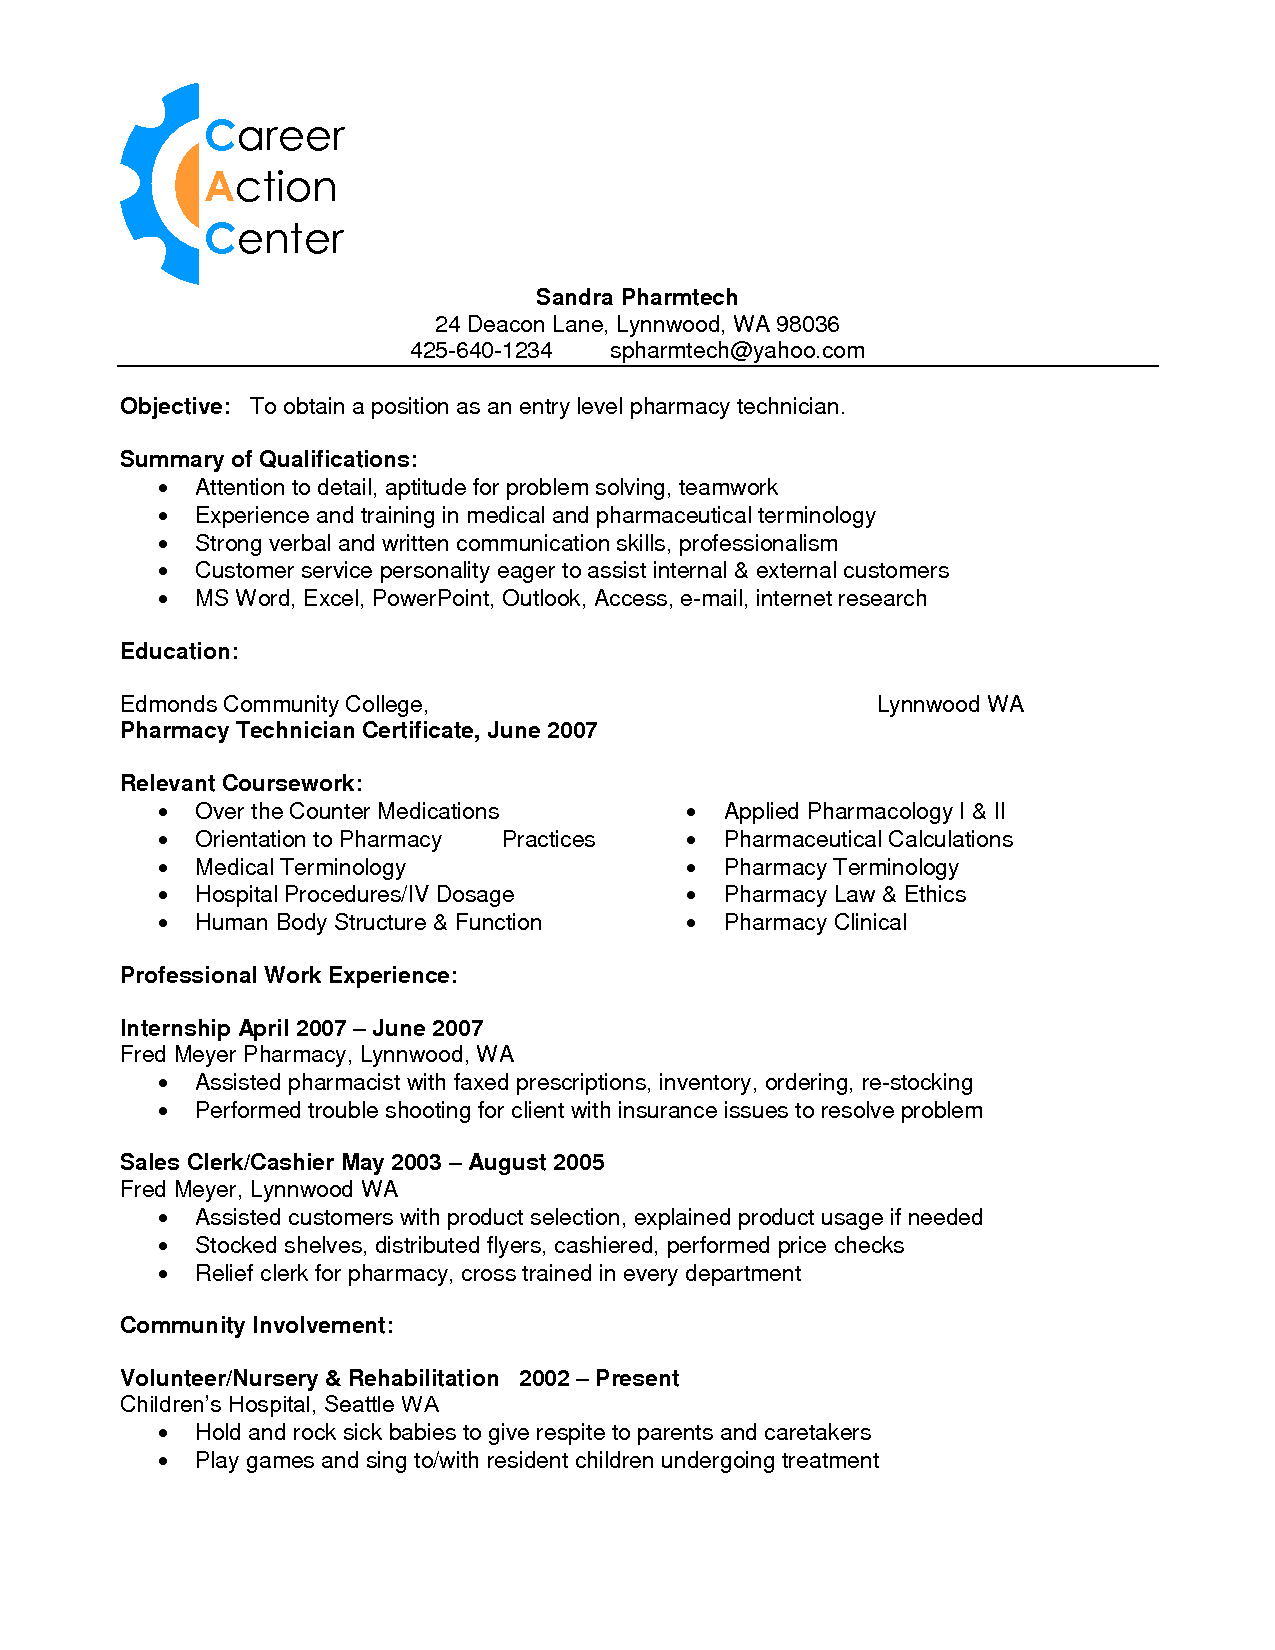 Internship Objective Resume Sample Resume For Bank Teller At Entry Level  Httpwww